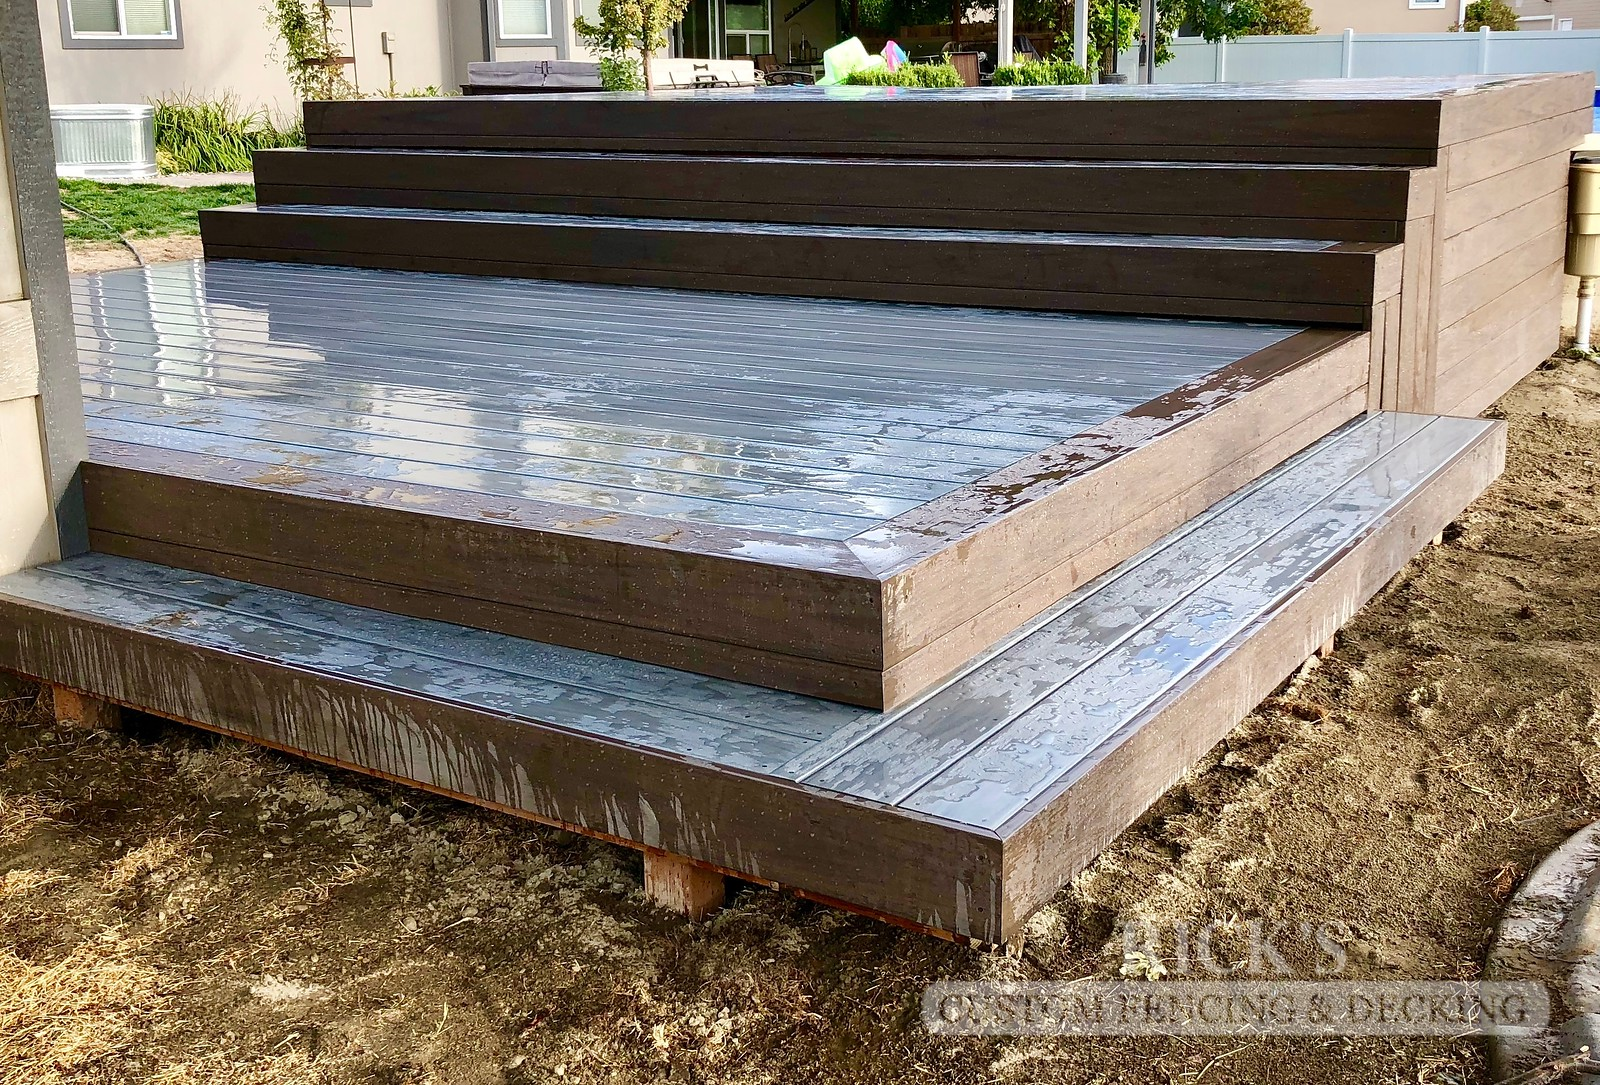 1252 - LifeStyle HDPE Composite Decking